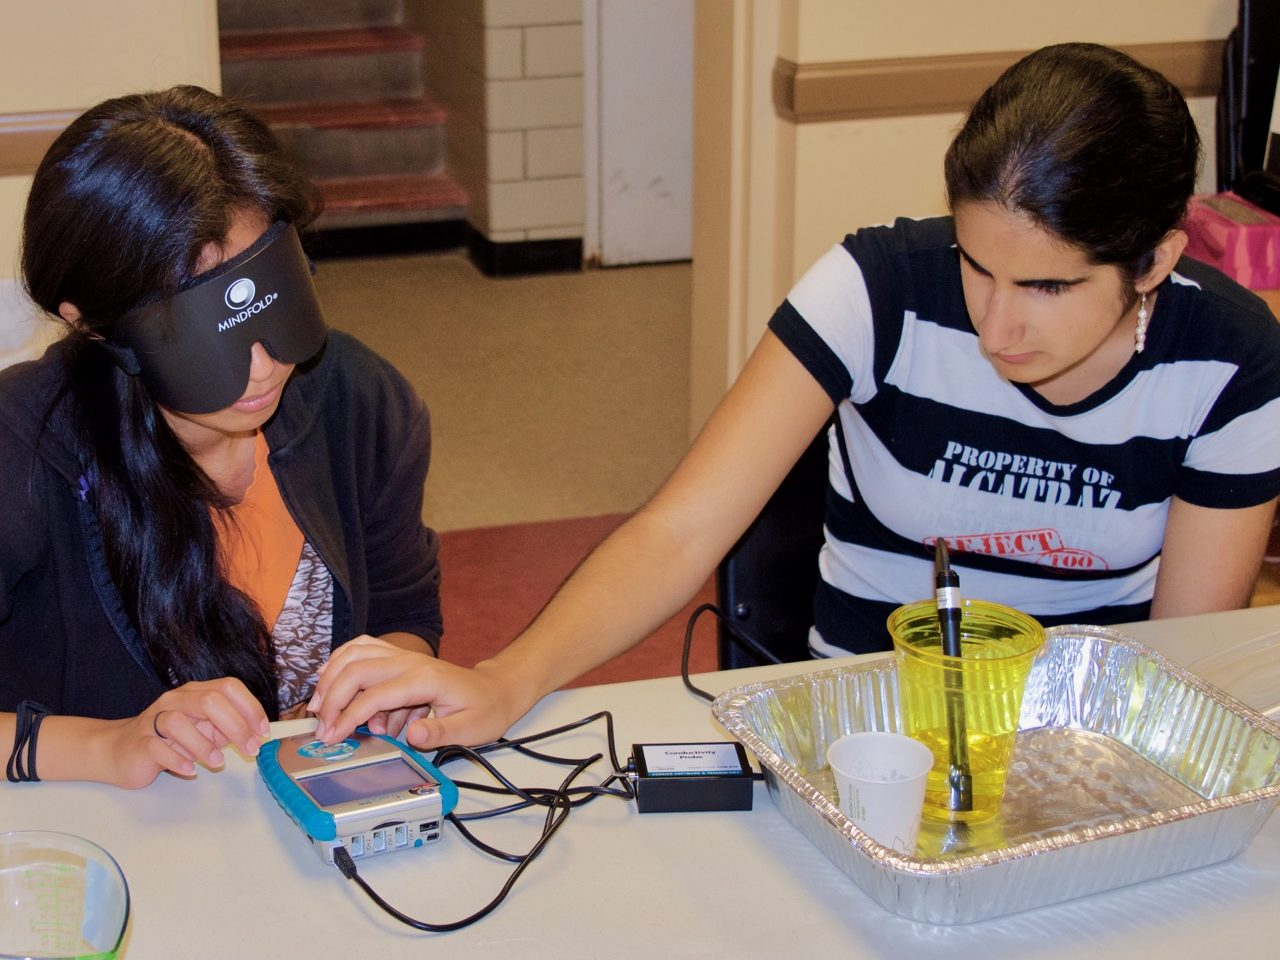 Summer Students work with the LabQuest